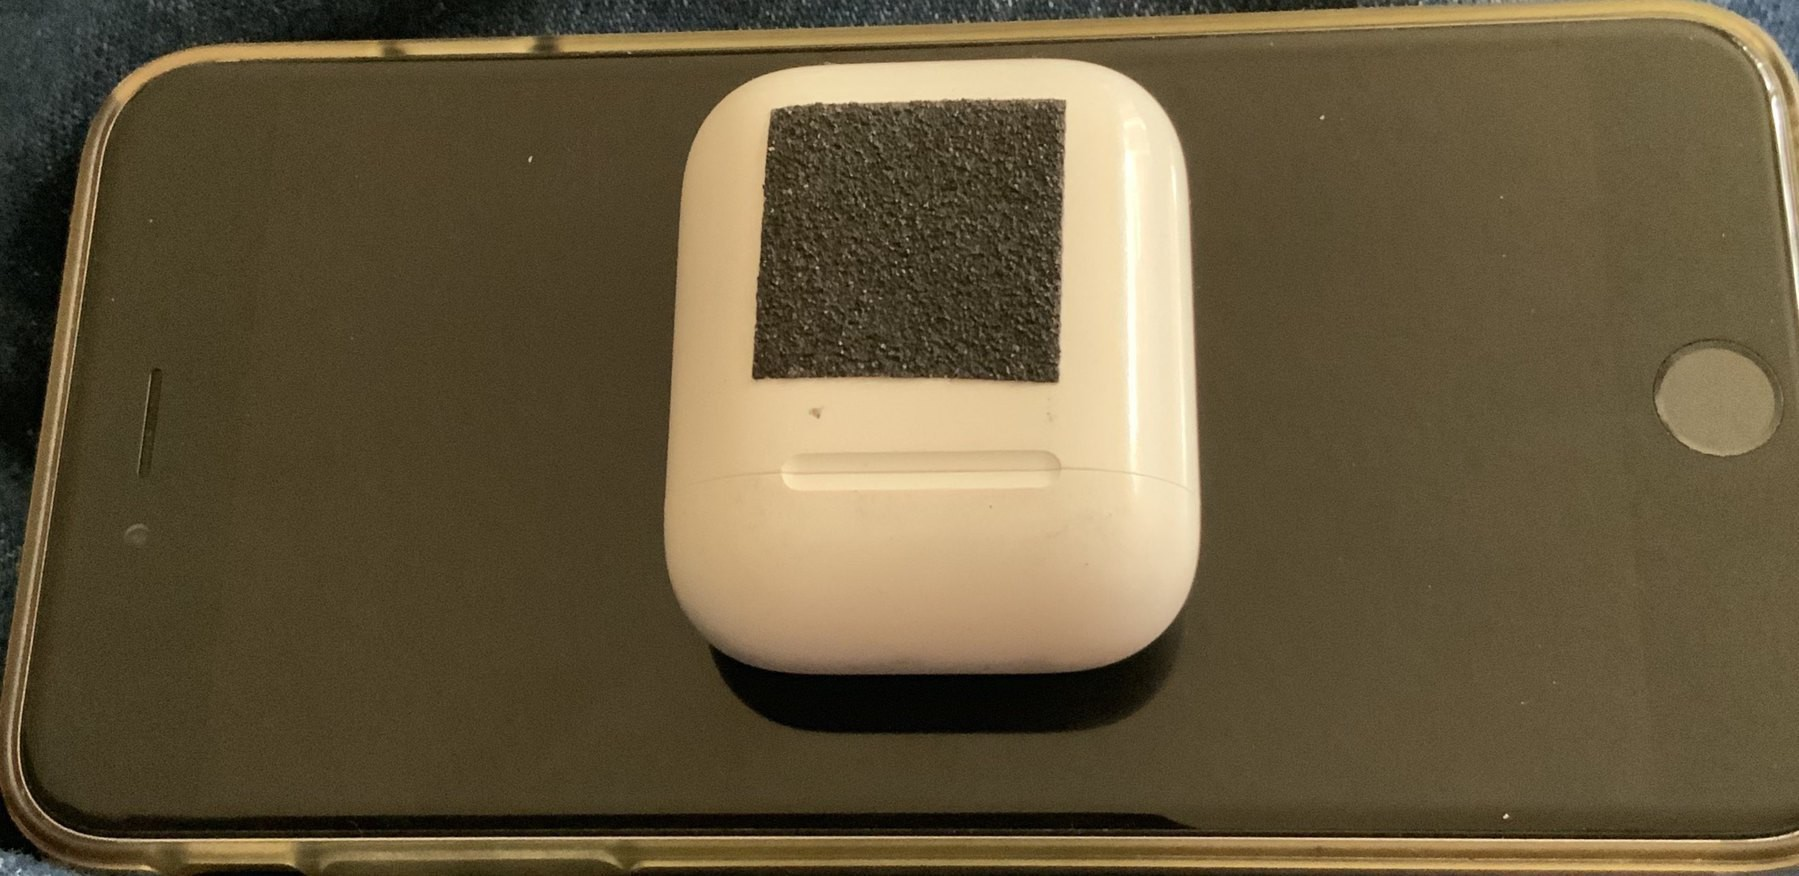 Stair edge nonslip tape on Airpods case